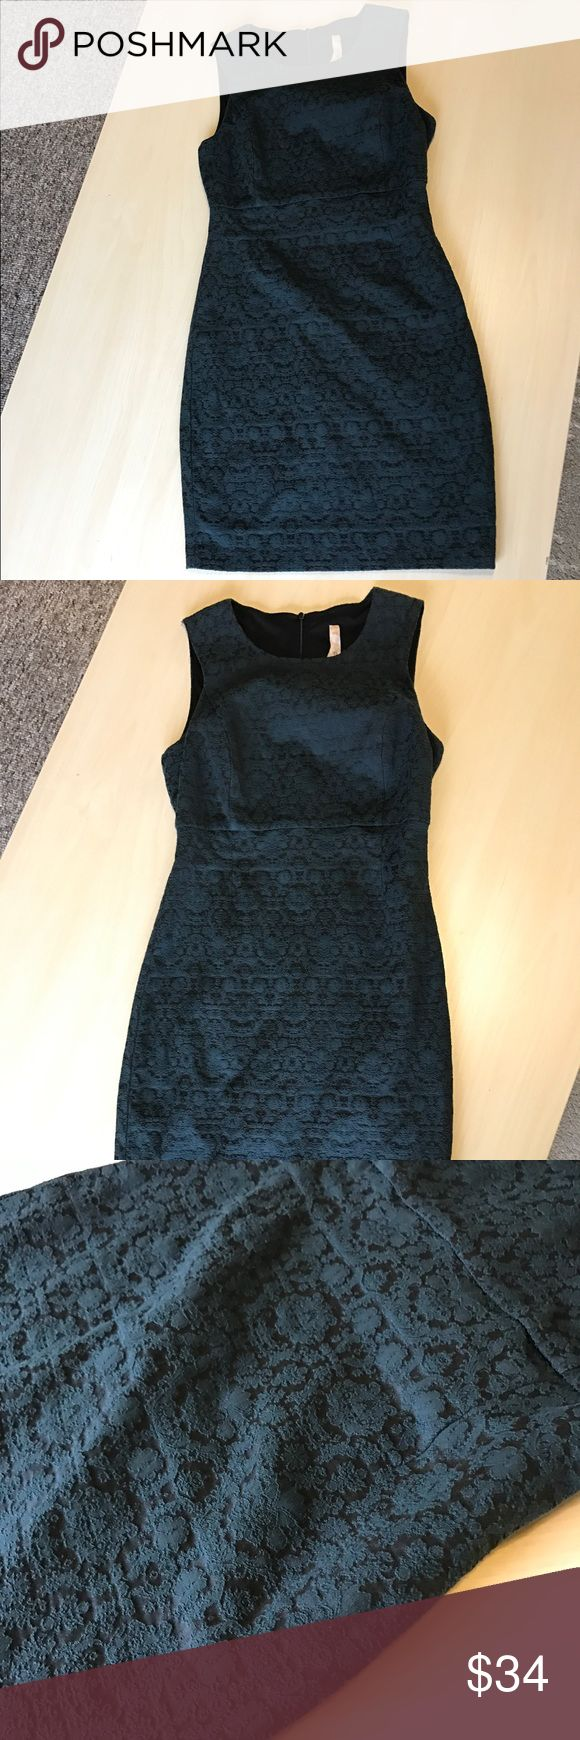 Bailey 44 sleeveless dress Bailey 44 Sleeveless Jacquard sheath dress from anthropologie. Size XS. Excellent, like new condition. Fully lined, hidden back zipper. Tailored bust. Just a beautiful fit that the Bailey 44 brand is so well known for. Anthropologie Dresses Mini